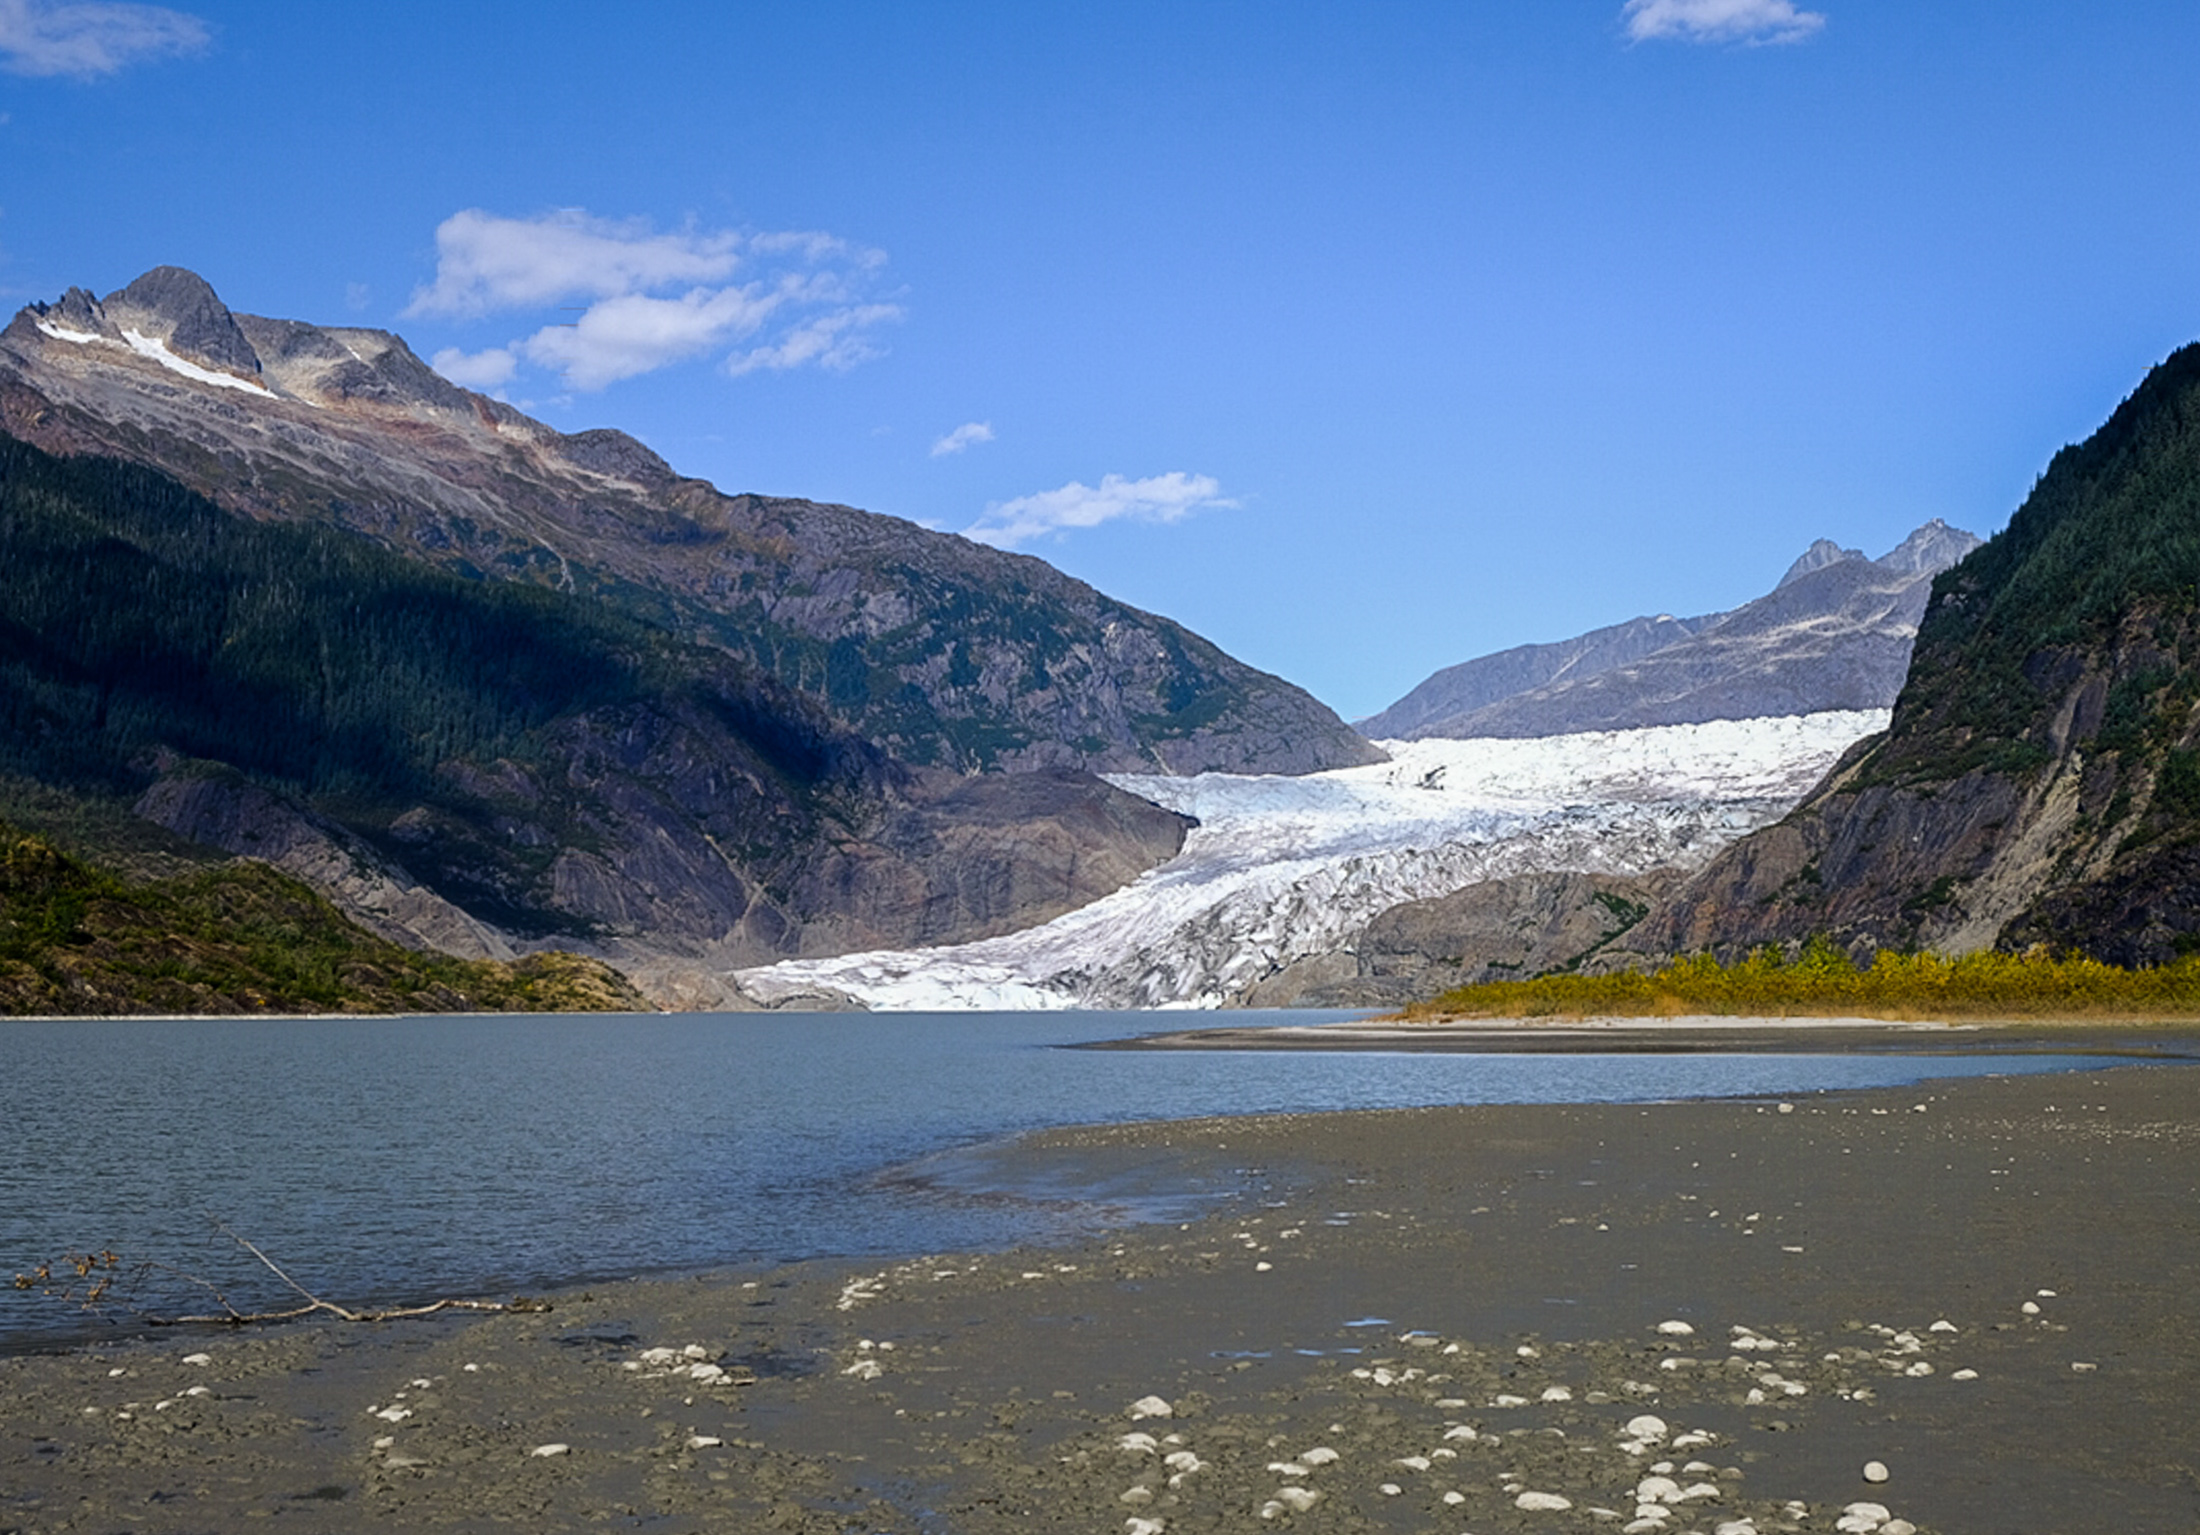 Once the Mendenhall Glacier retreats all the way to the top, there will be no more chasing the ice up the valley. JONAA©Mia Bennett